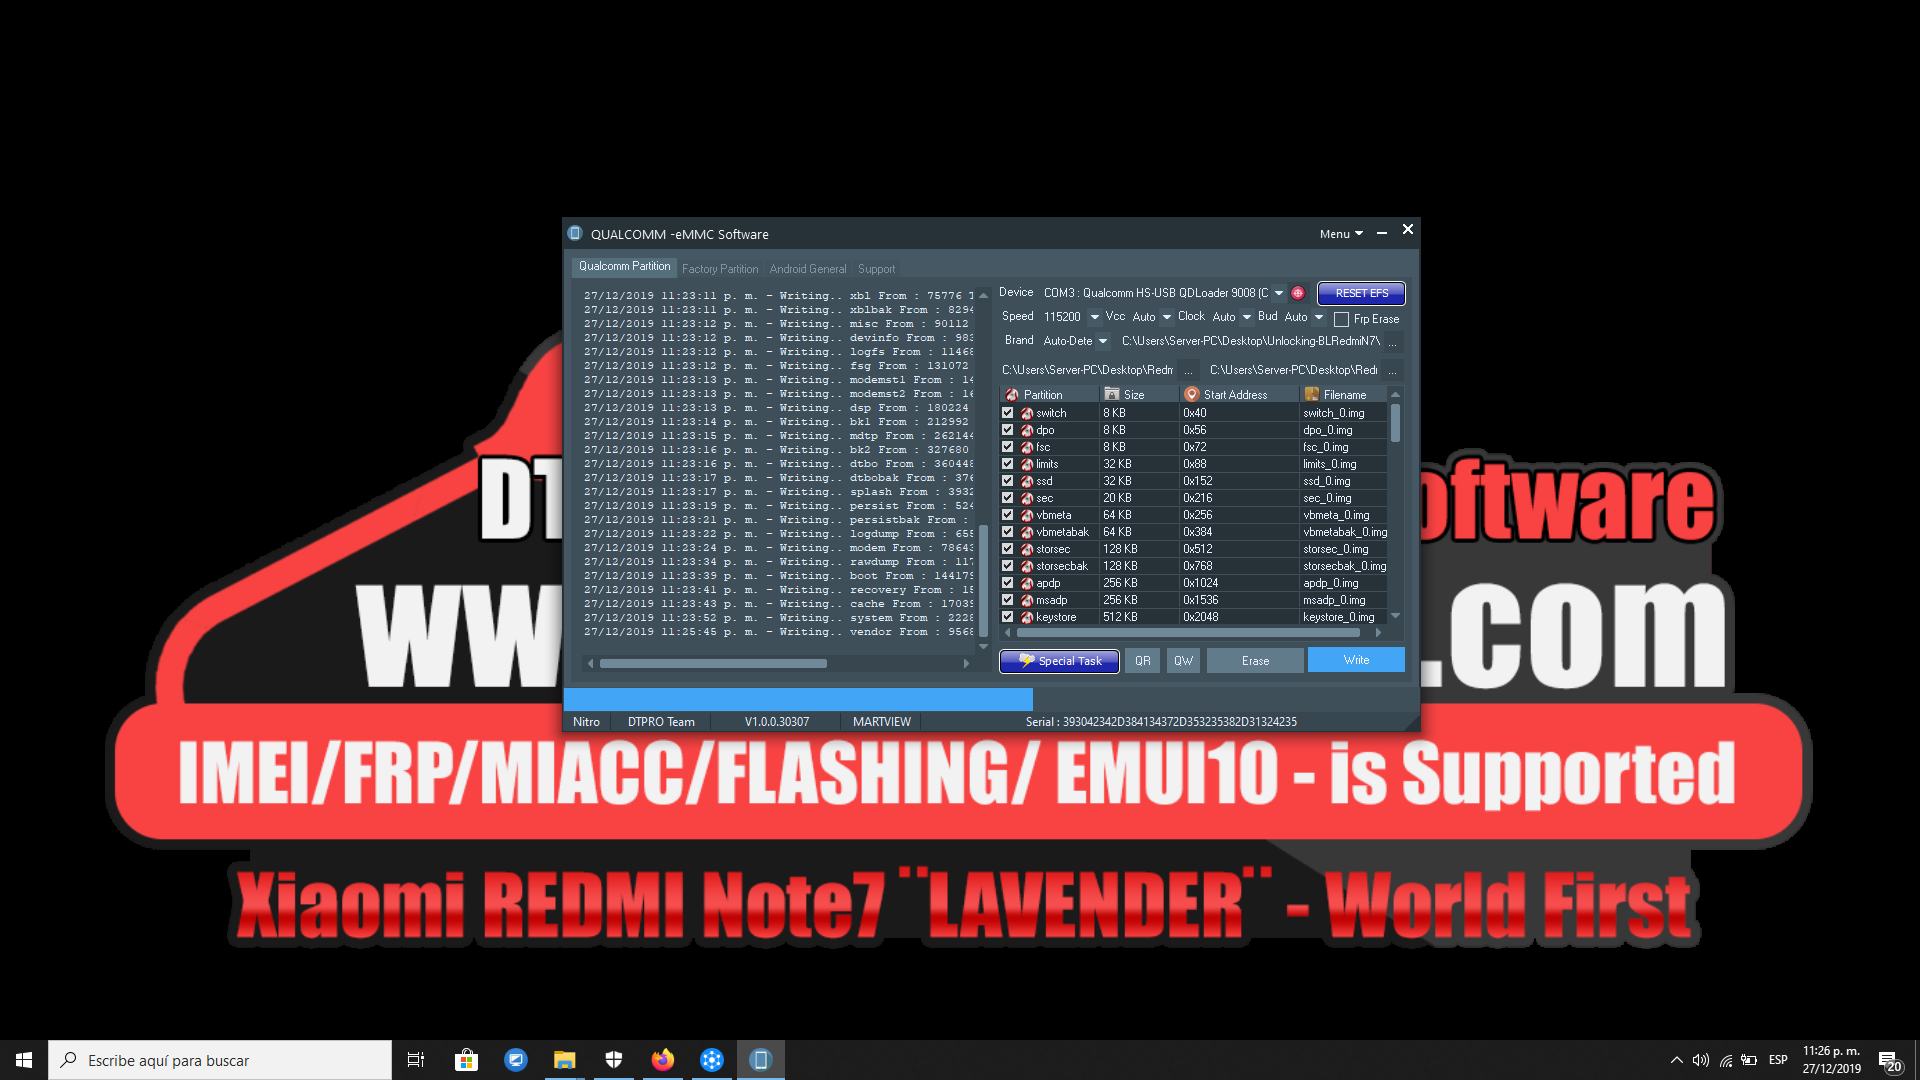 Xiaomi REDMI note7 - Writing ENGineer Firmware Successfull - Beta Version V1.0.0.30307 - OK!!